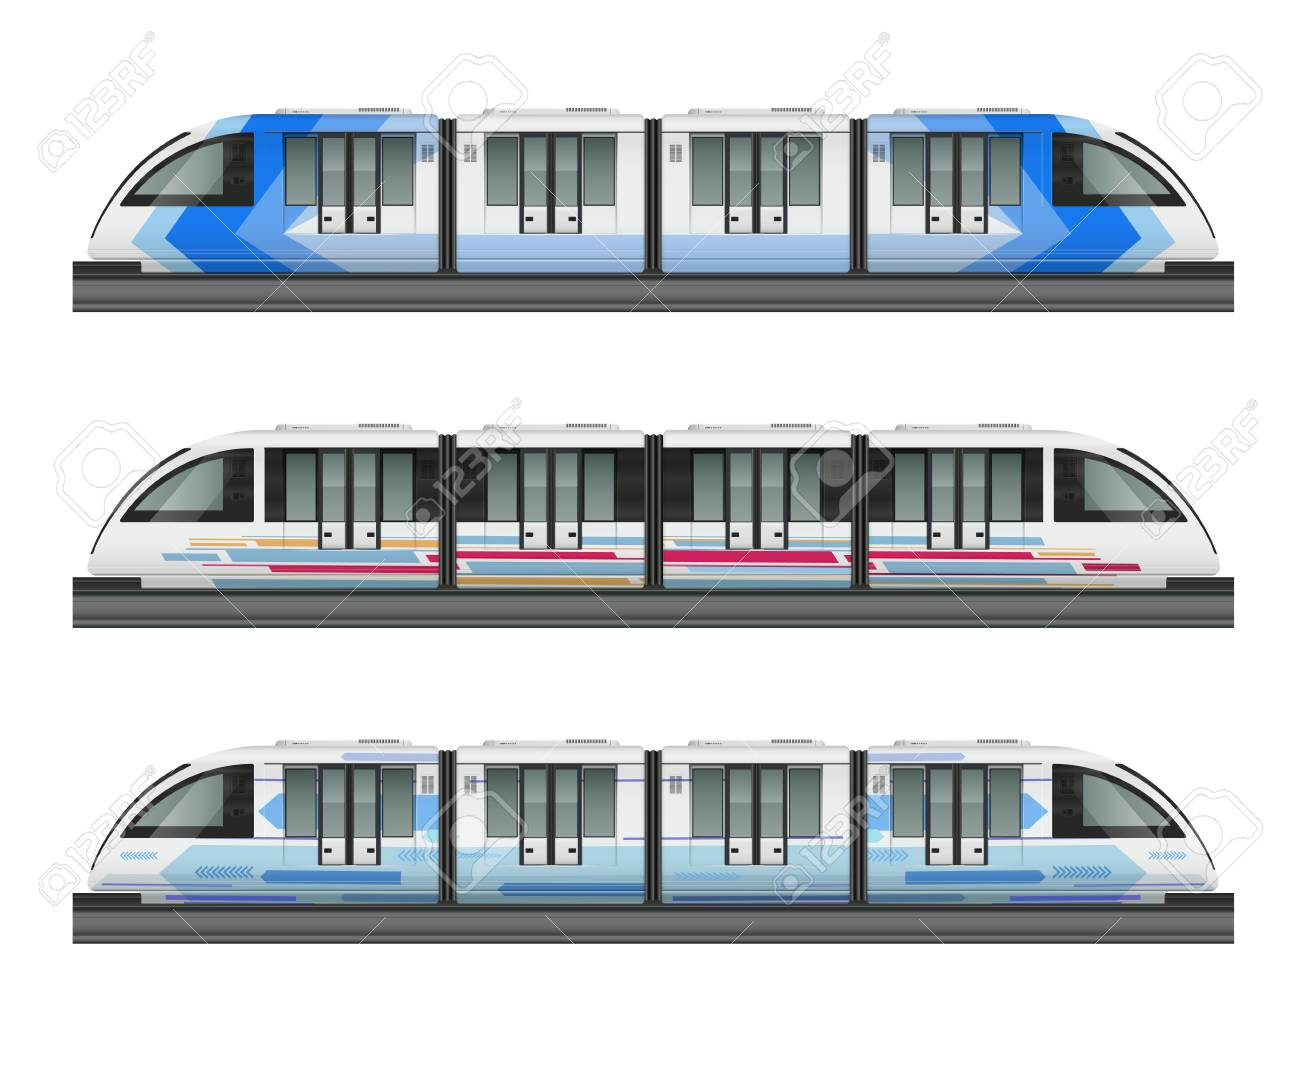 Passenger tram train realistic mockup with side view of three metropolitan trains with various coloring livery vector illustration - 128160367